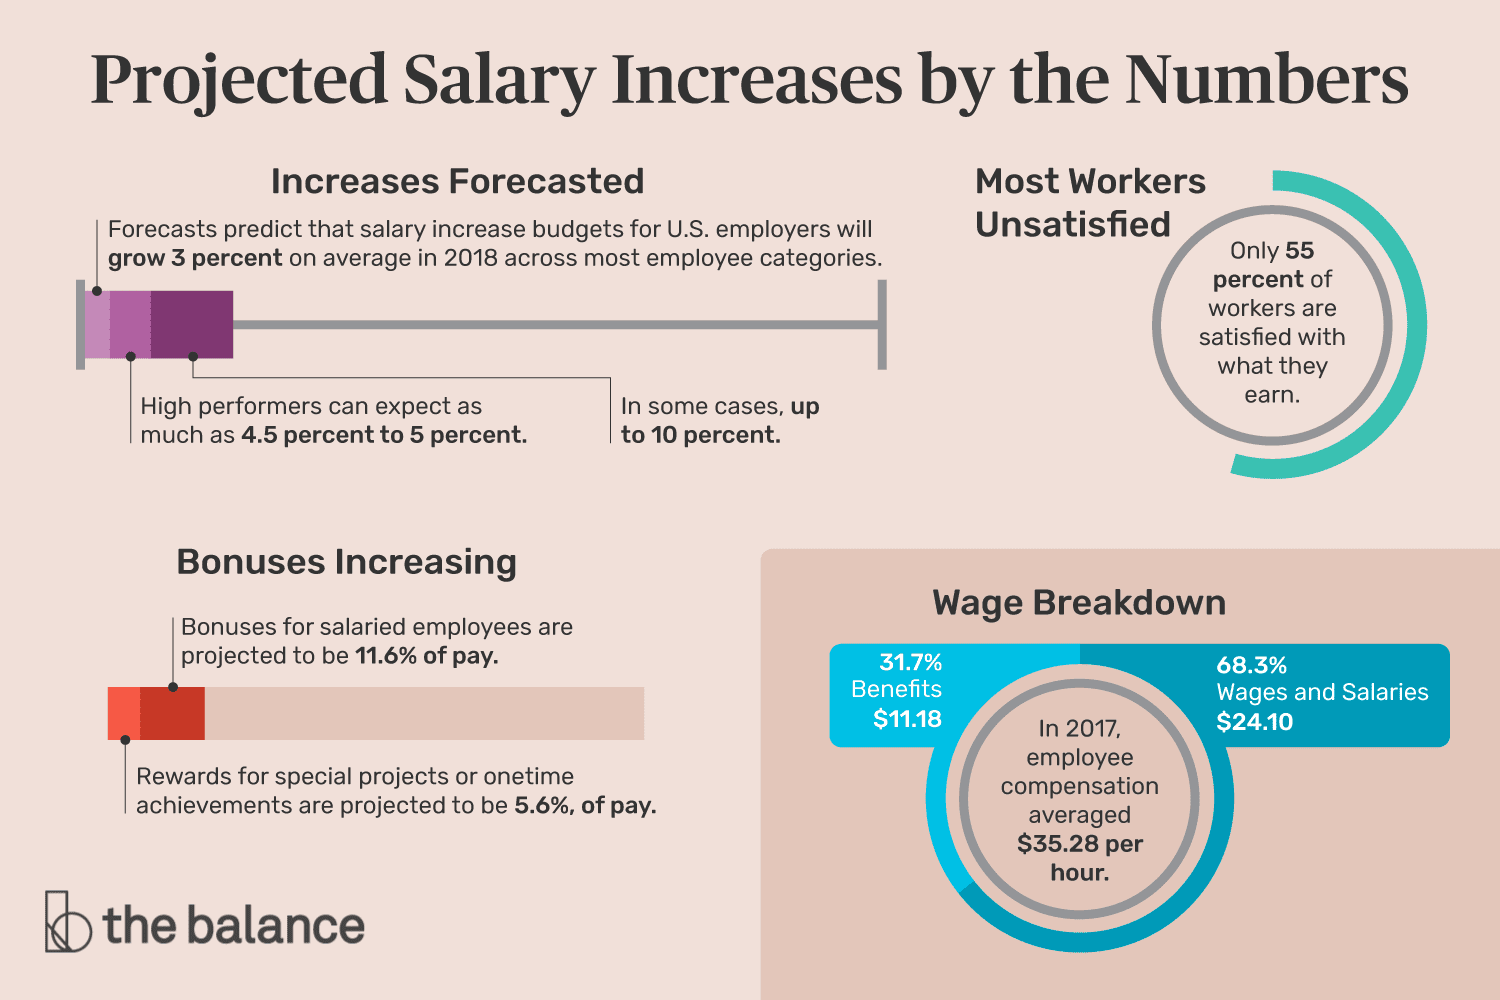 Why Do Some Employees Receive Salary Increases